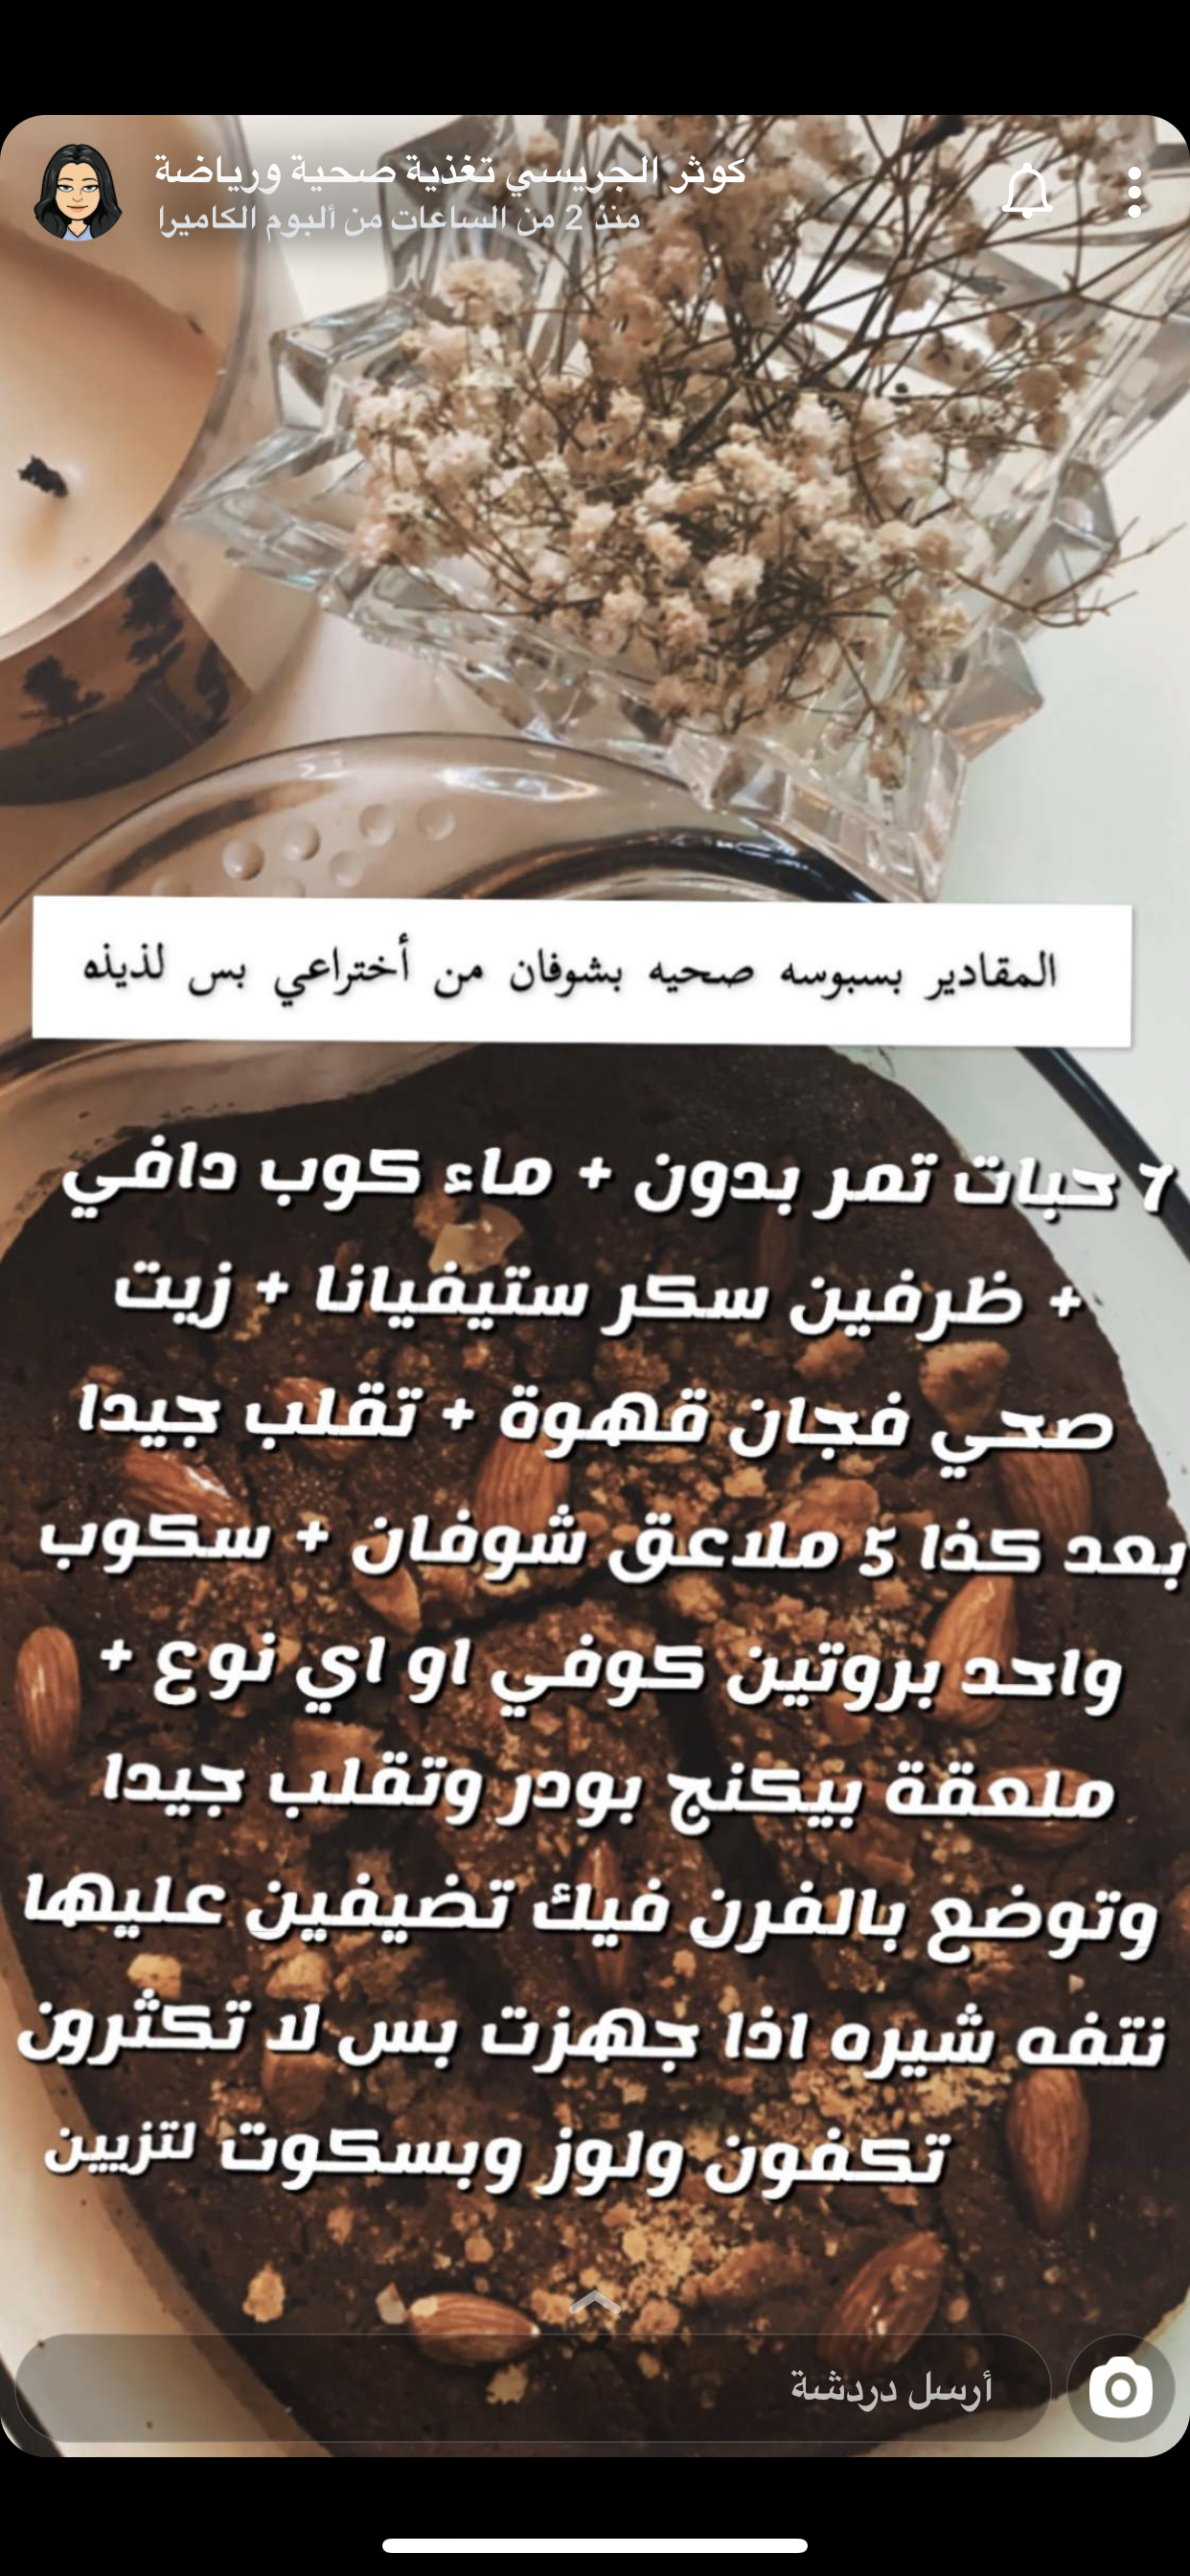 Pin By Mo0odhi Majed On نظام و رياضة In 2020 How To Dry Basil Herbs Basil